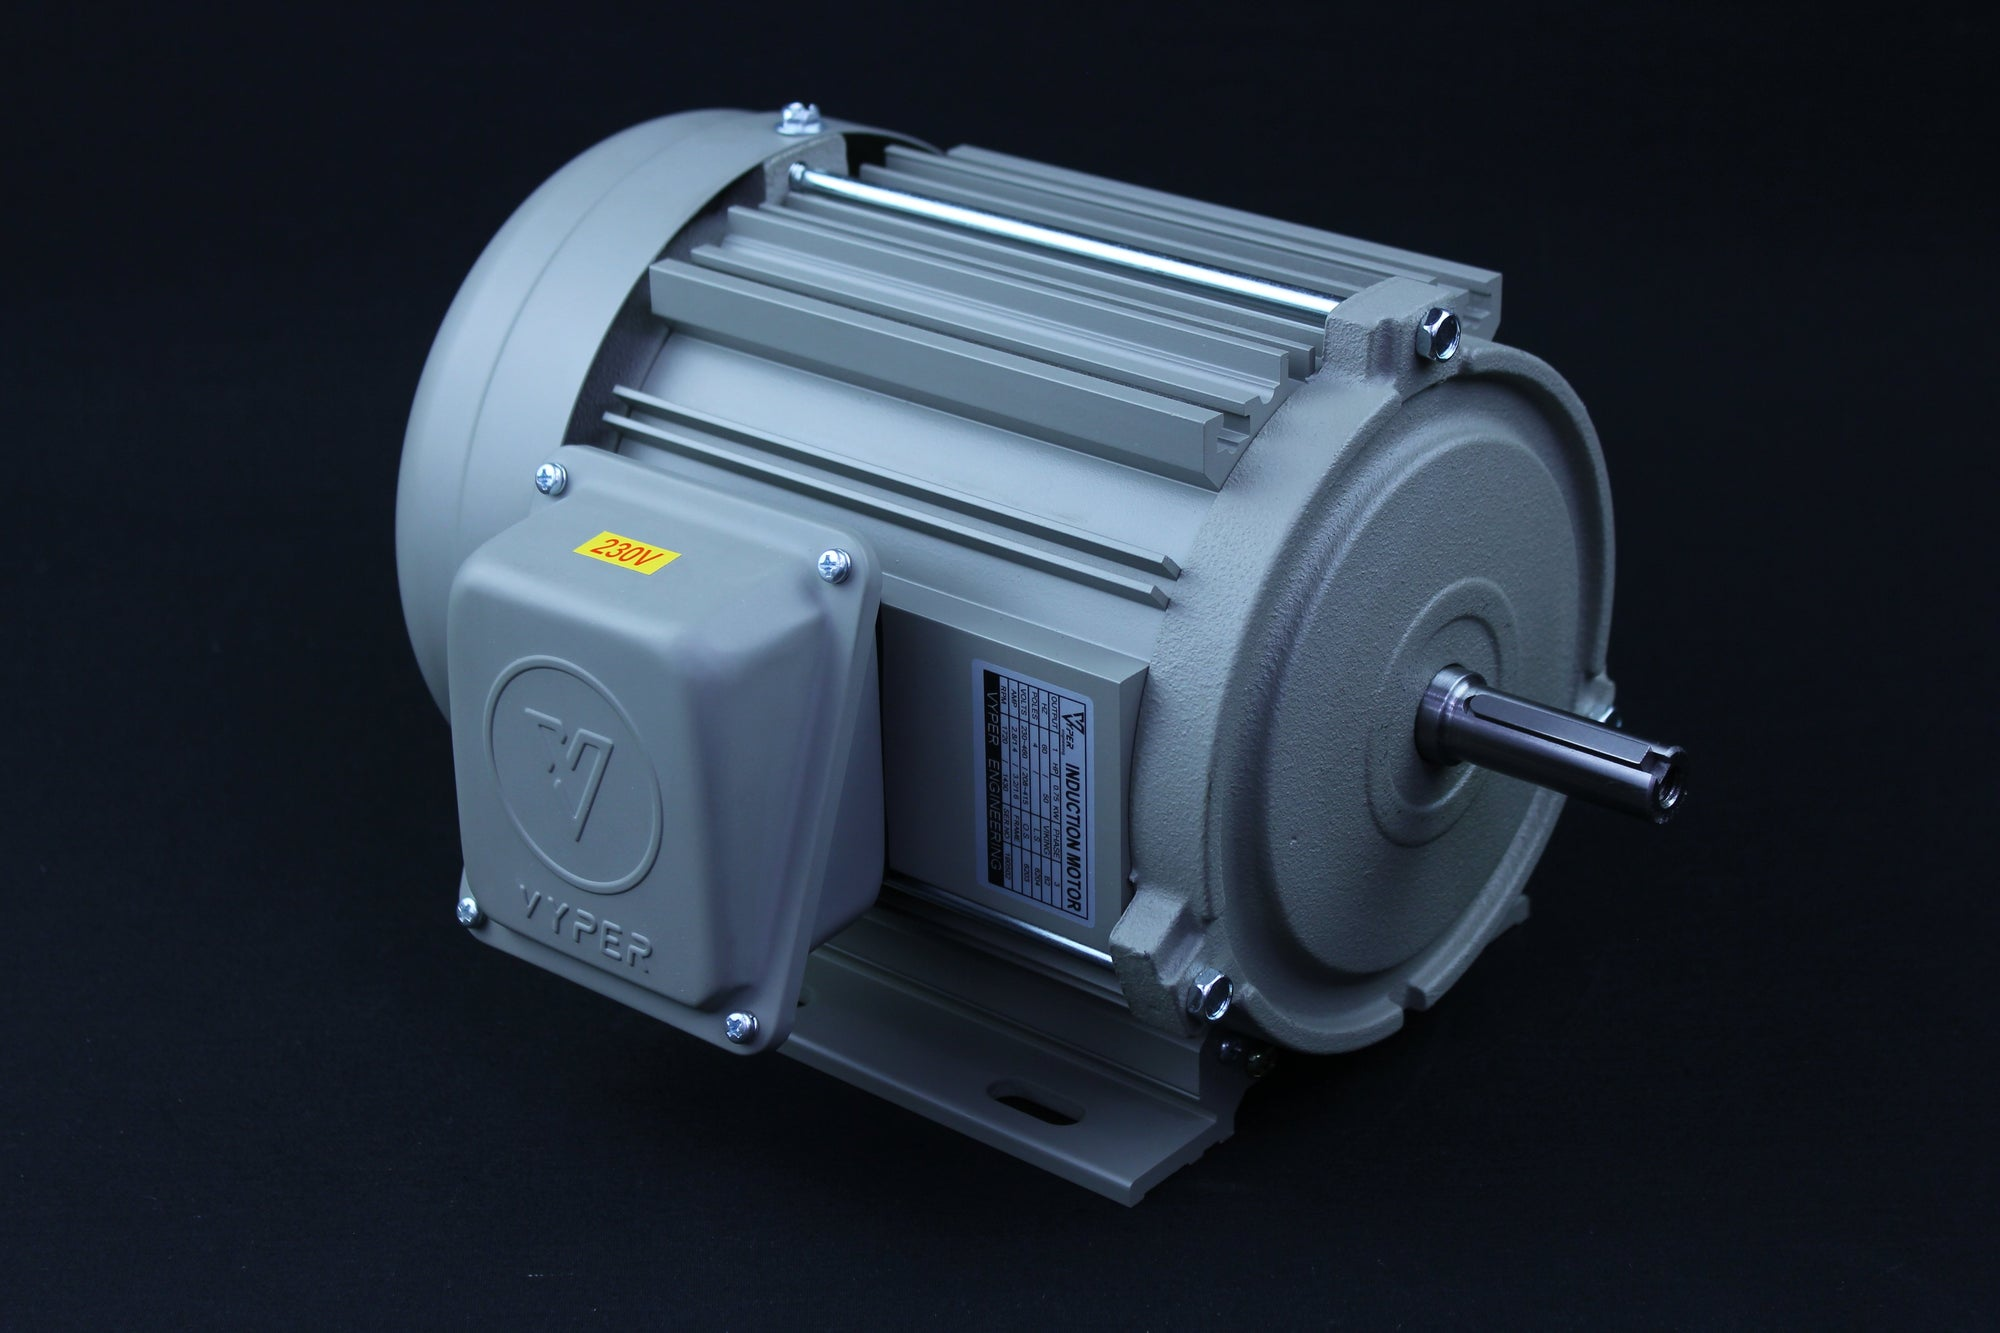 Three Phase - 1/4HP - 208-230/460V - 3000/3600RPM - 50/60HZ - 63 - Foot - IE1